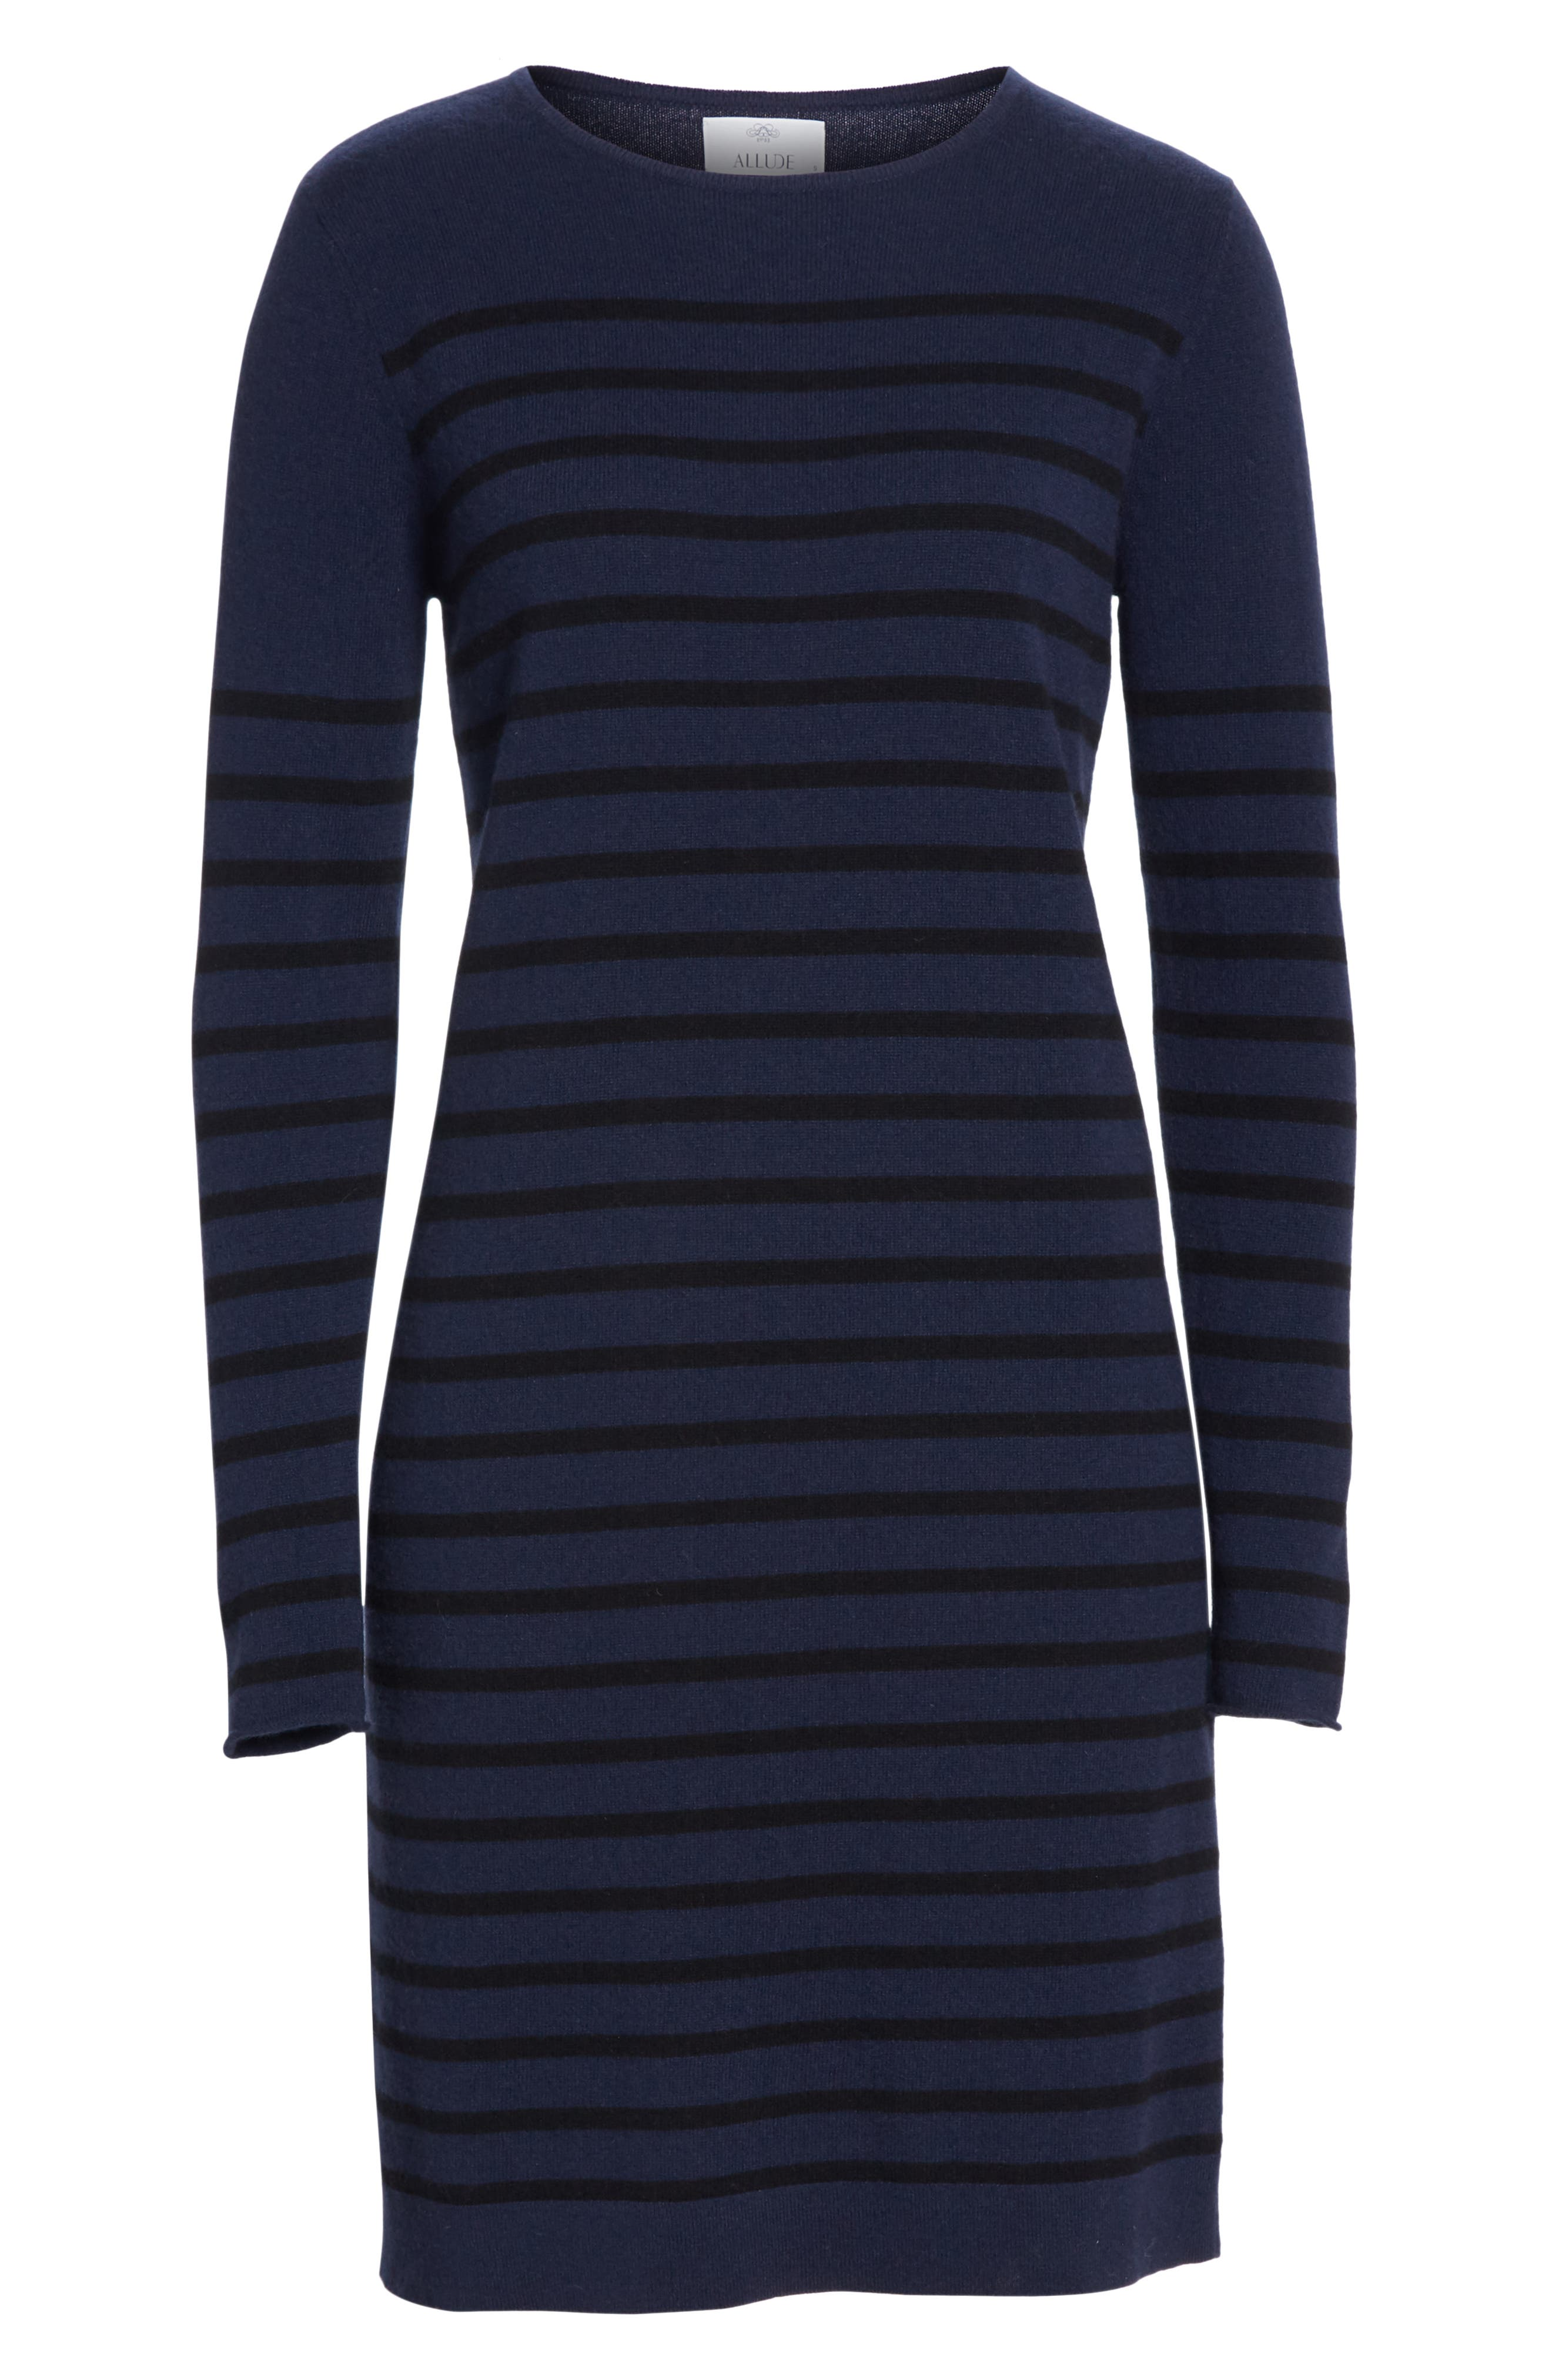 Stripe Wool & Cashmere Sweater Dress,                             Alternate thumbnail 7, color,                             NAVY/ BLACK